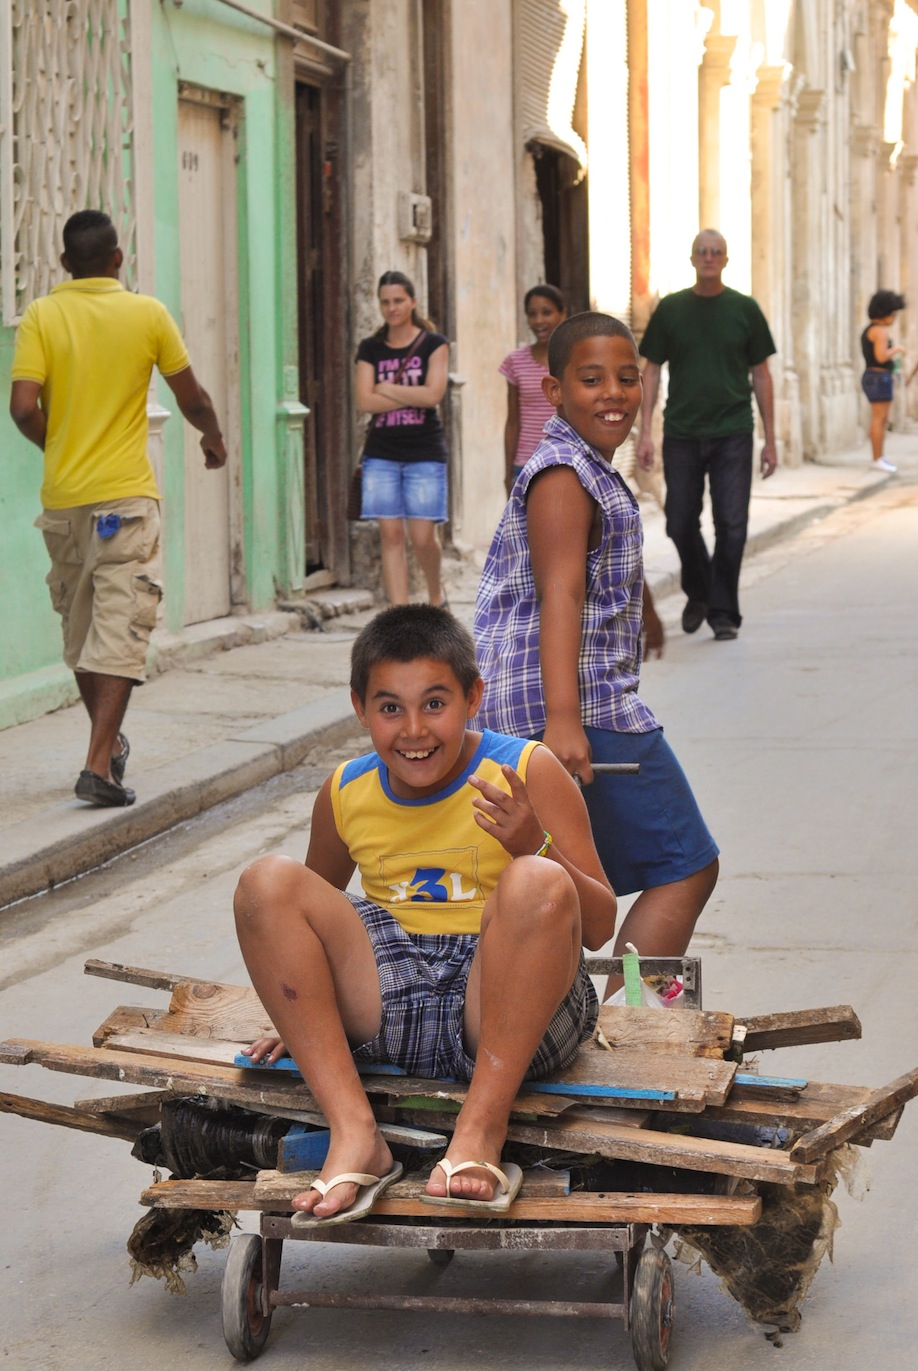 06_Cuban children having fun in La Habana